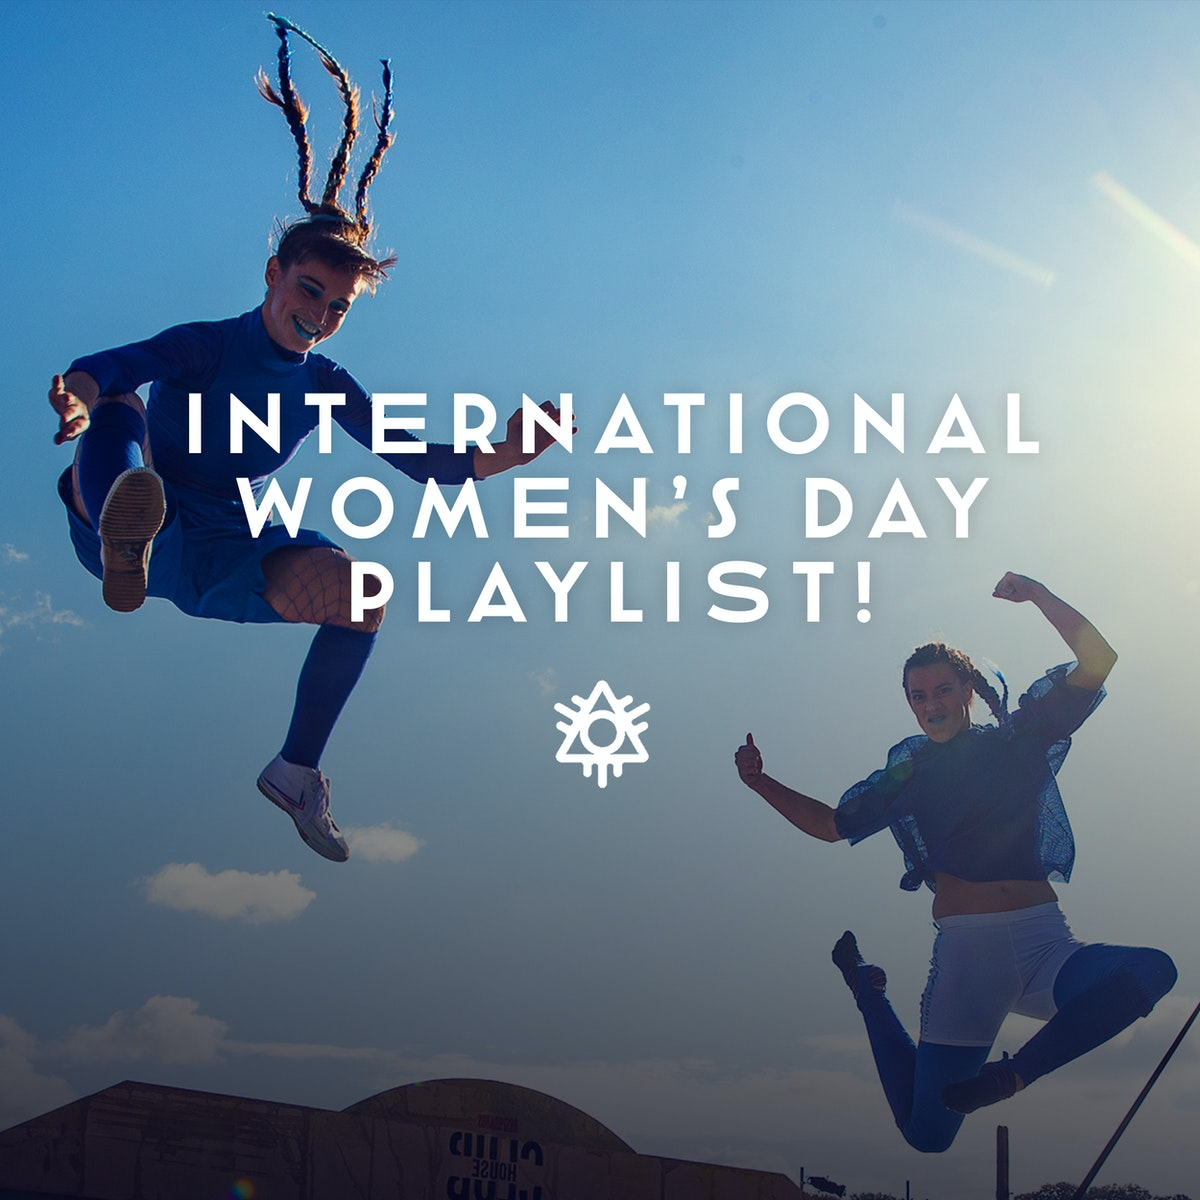 International Women's Day Celebration & Playlist